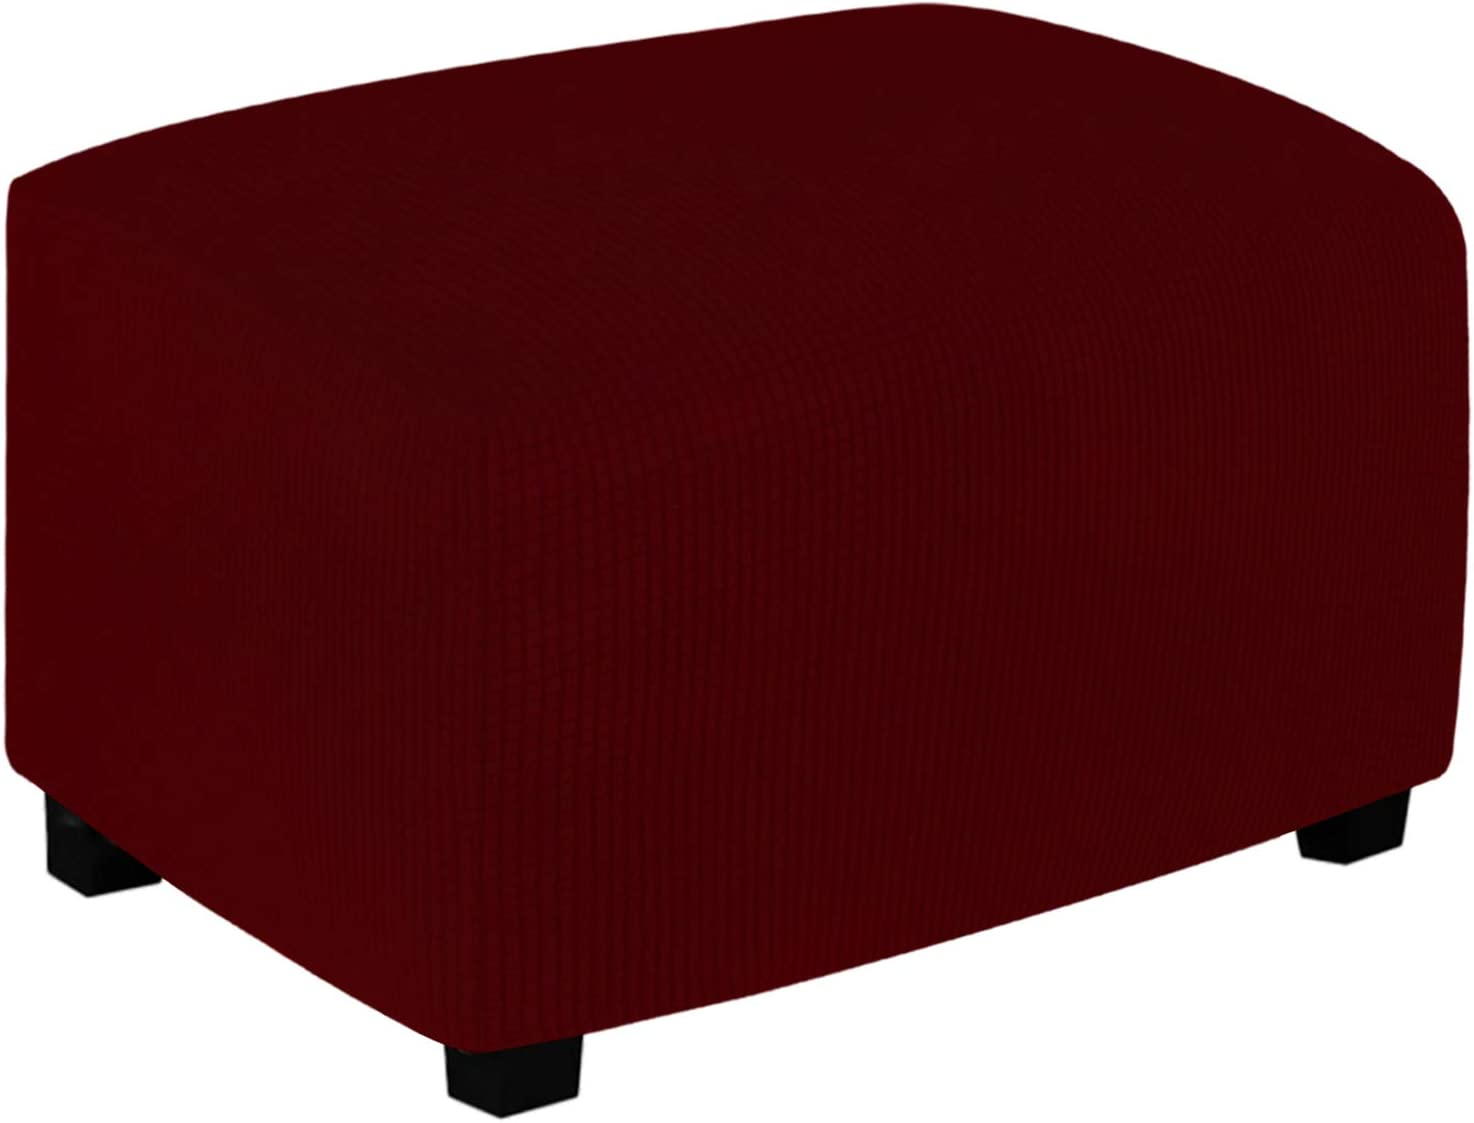 Max 61% OFF Easy-Going Stretch Ottoman Max 40% OFF Cover Stool Furniture Folding Storage